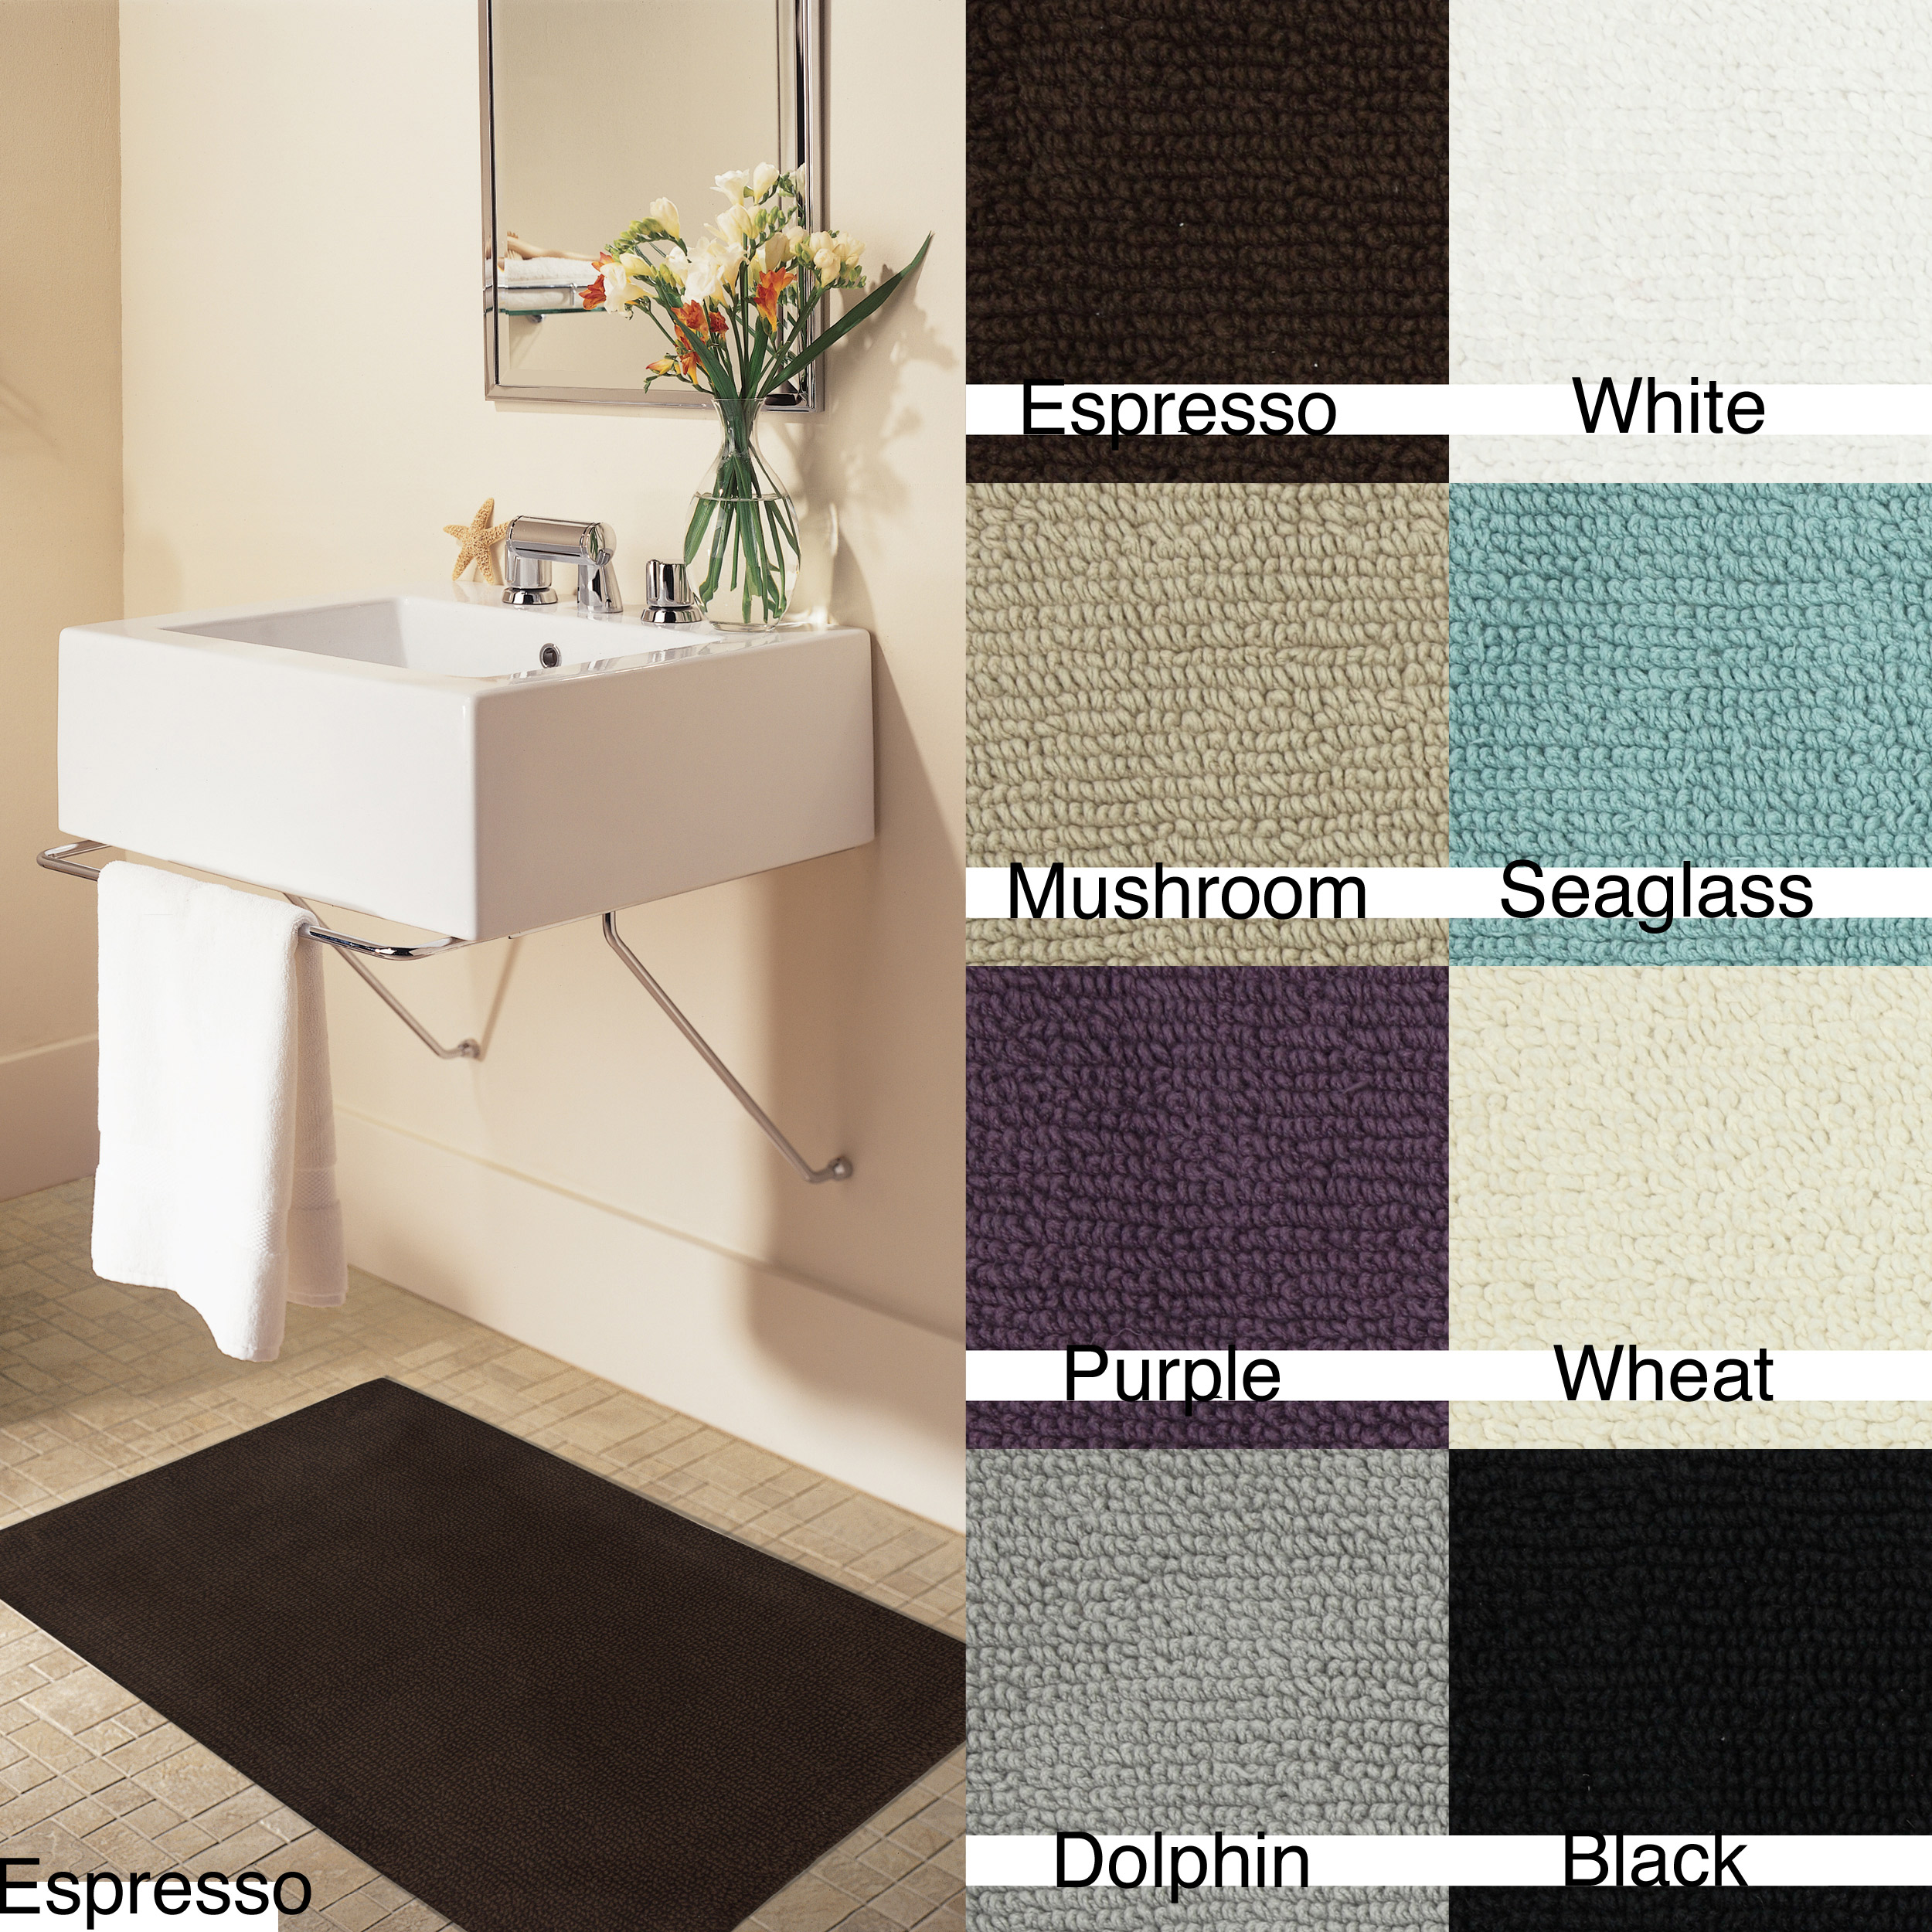 Cotton Casual 17 x 24 Bath Rug (Set of 2) - Thumbnail 0